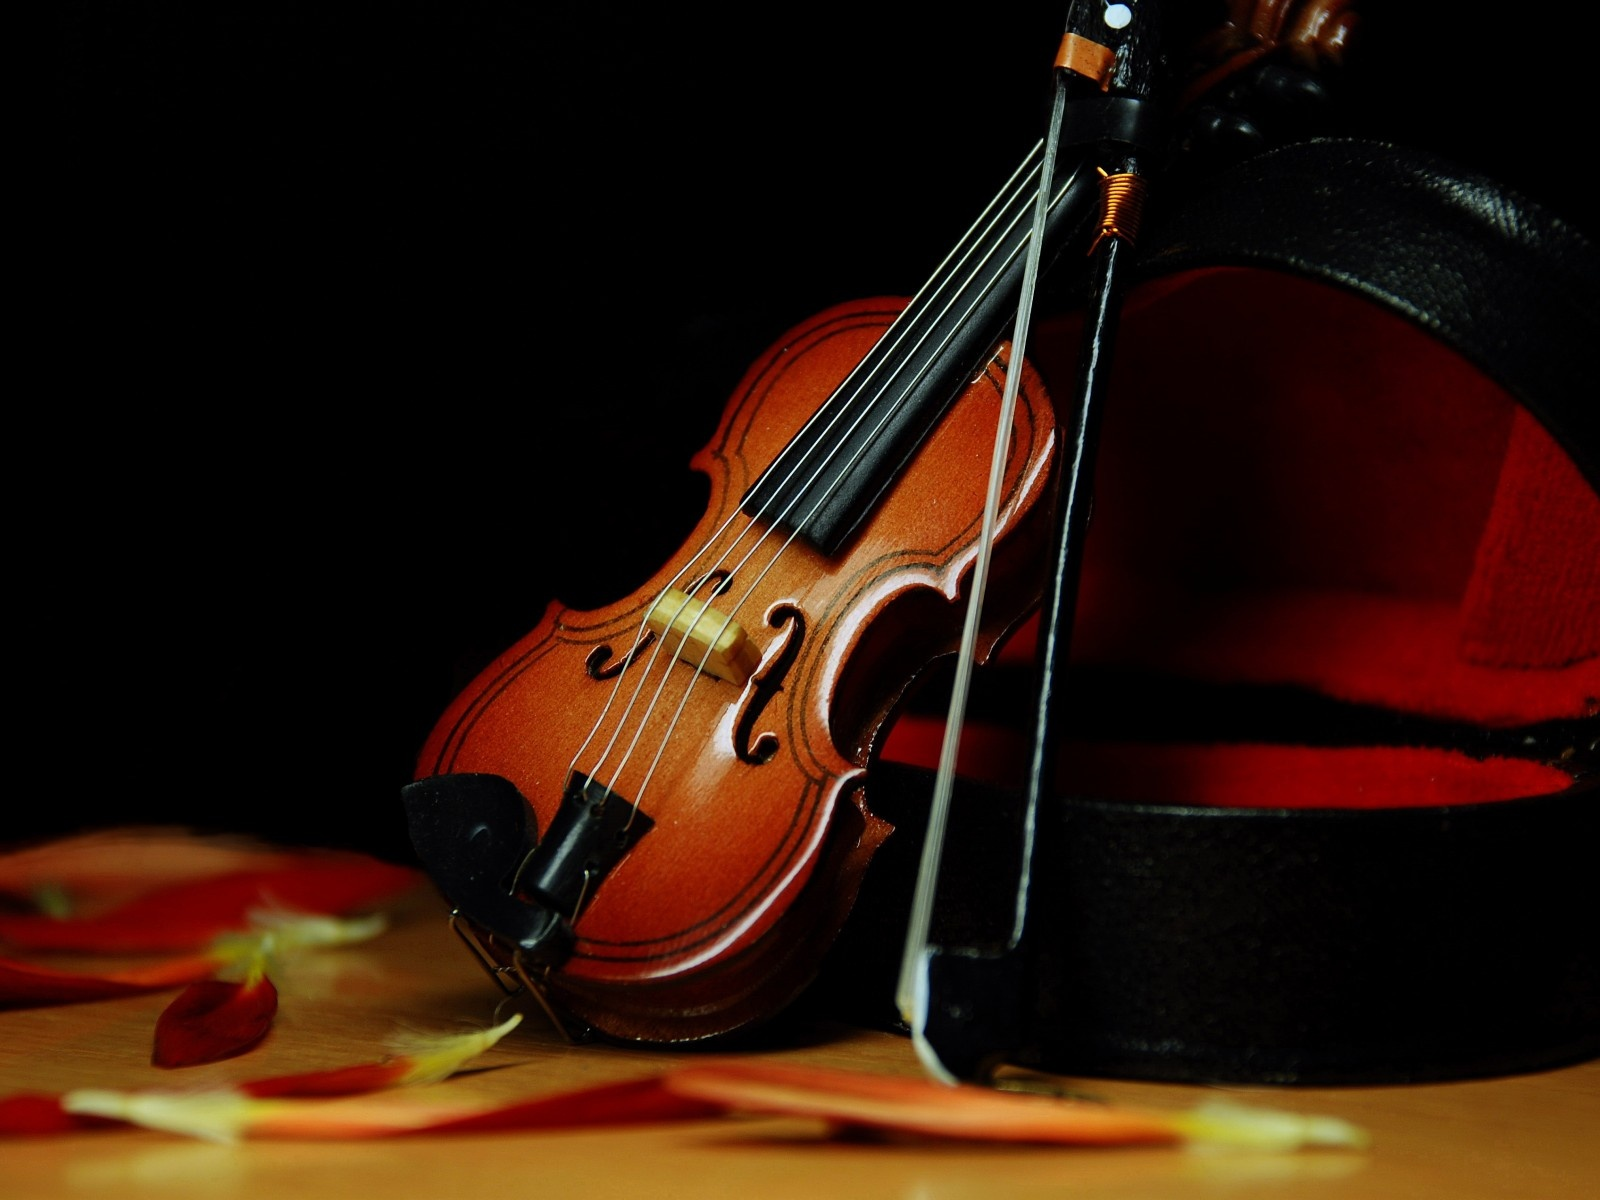 Cello Wallpaper Photo 22287 Hd Pictures: Violin Wallpapers High Quality